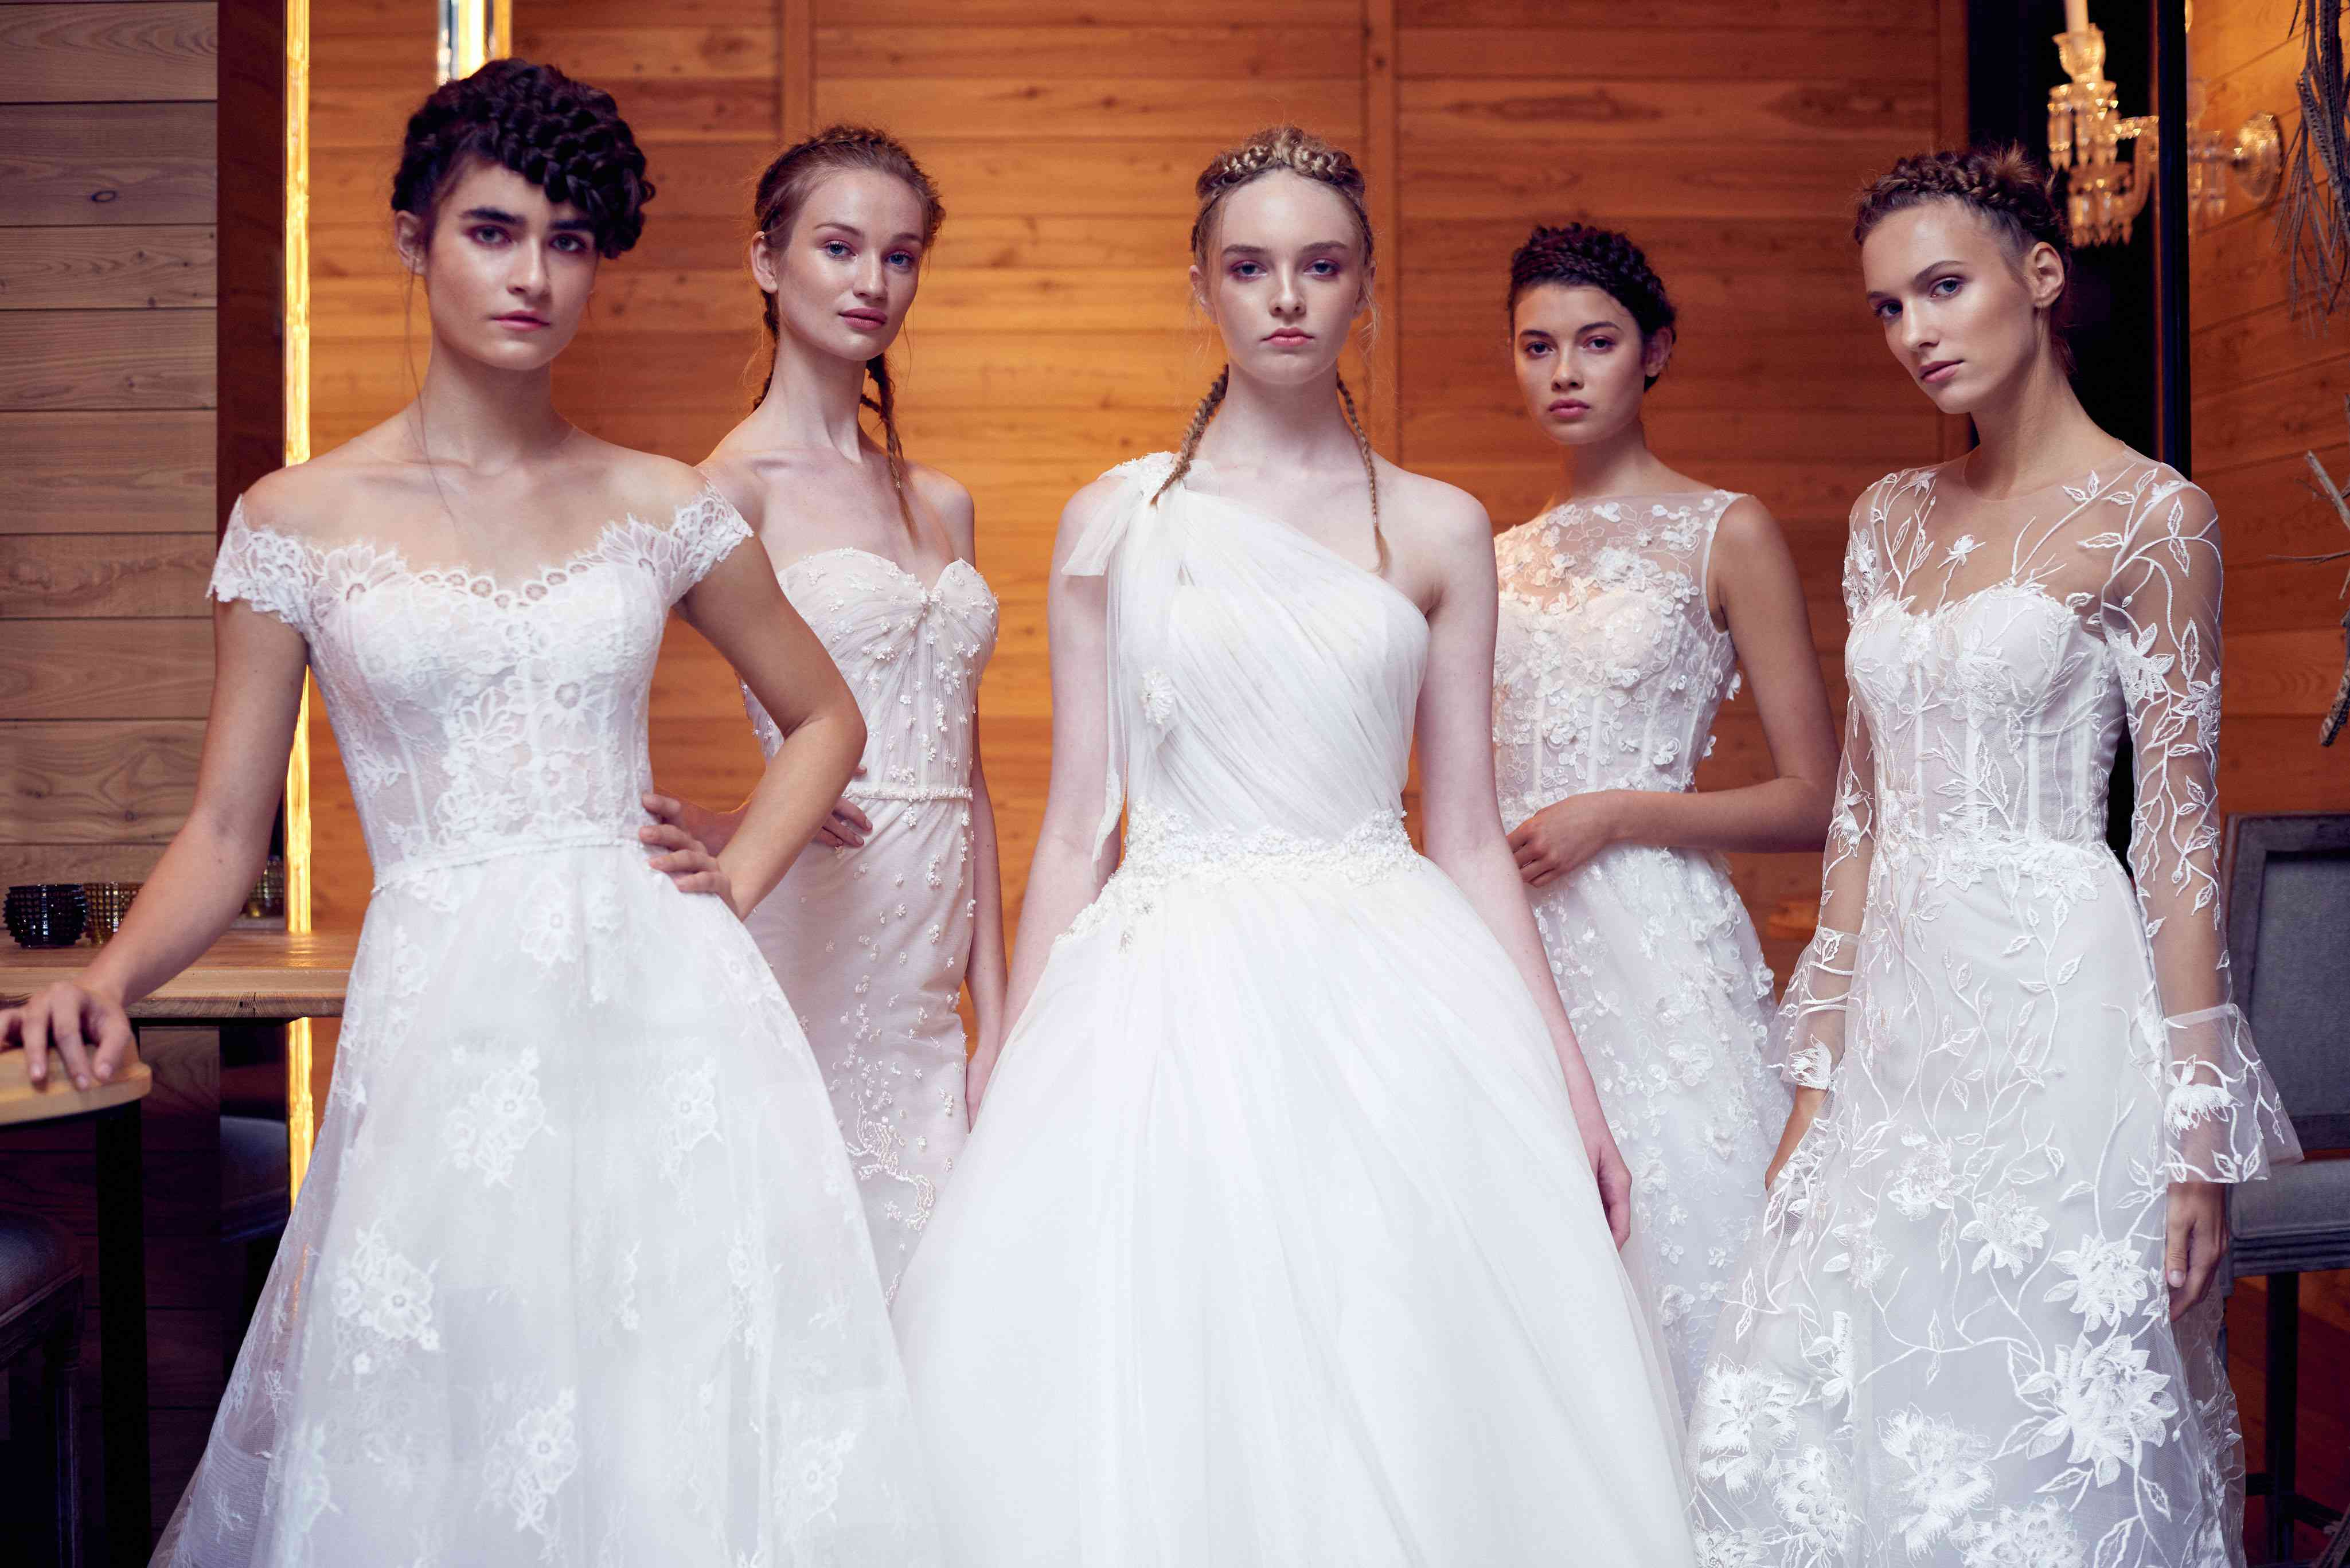 How To Choose Your Dream Wedding Dress 70 Things To Know,Wedding Dress For Plus Size Brides